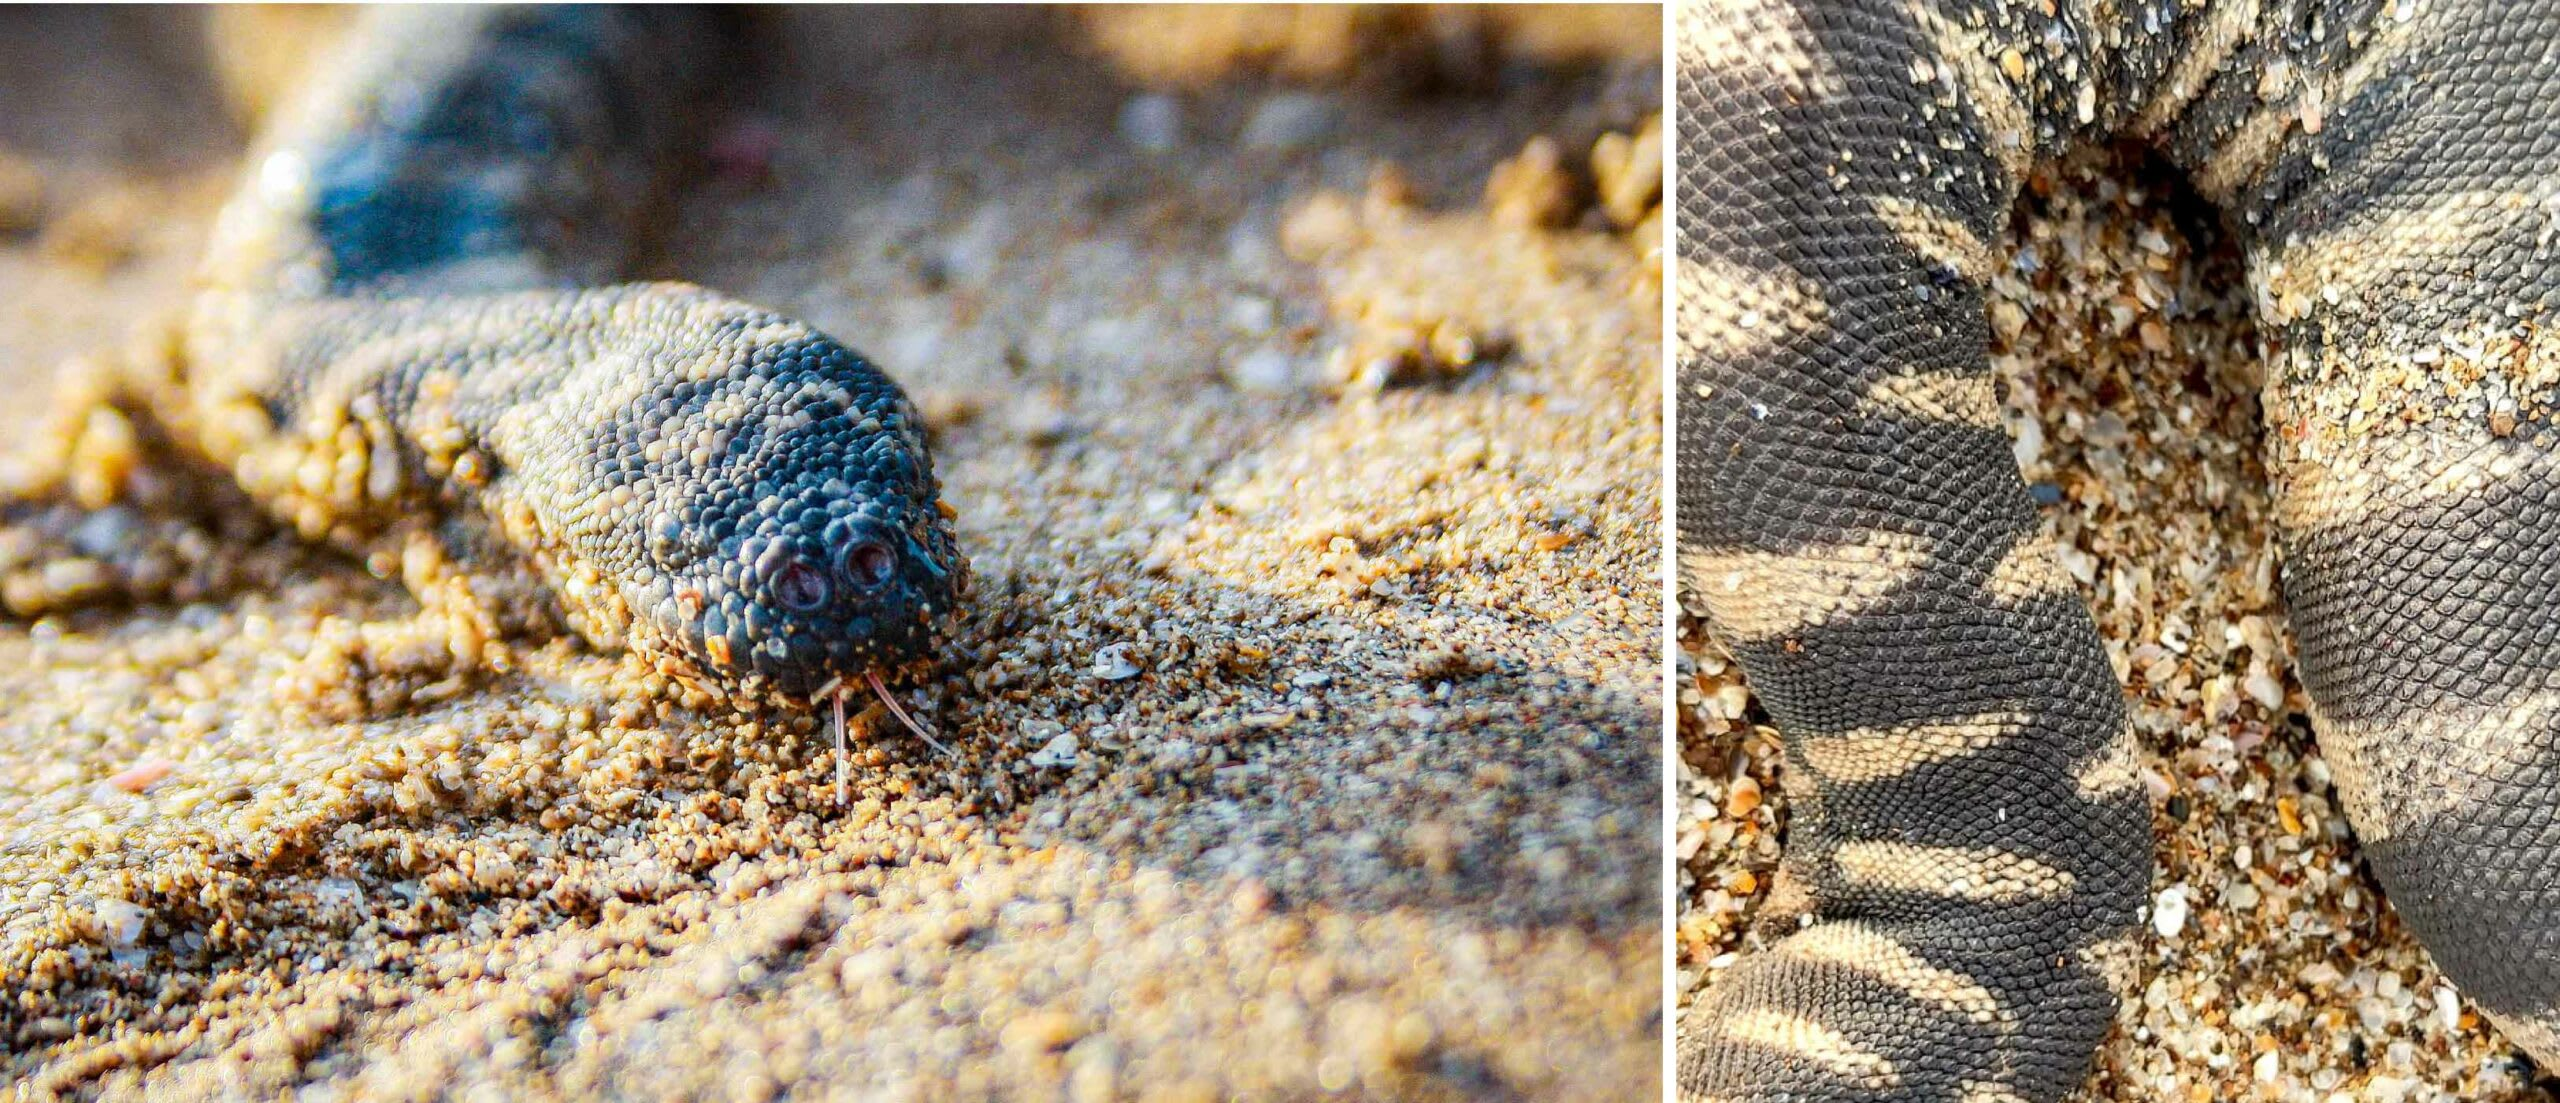 The little file snake's tongue (left) enables it to smell underwater, and its rough scales (right) give it support and allow it to get a good grip on prey in the ever-flowing tidal mangrove creeks. Photos: Gaurav Patil (left), Rahulratan Chauhan (right)